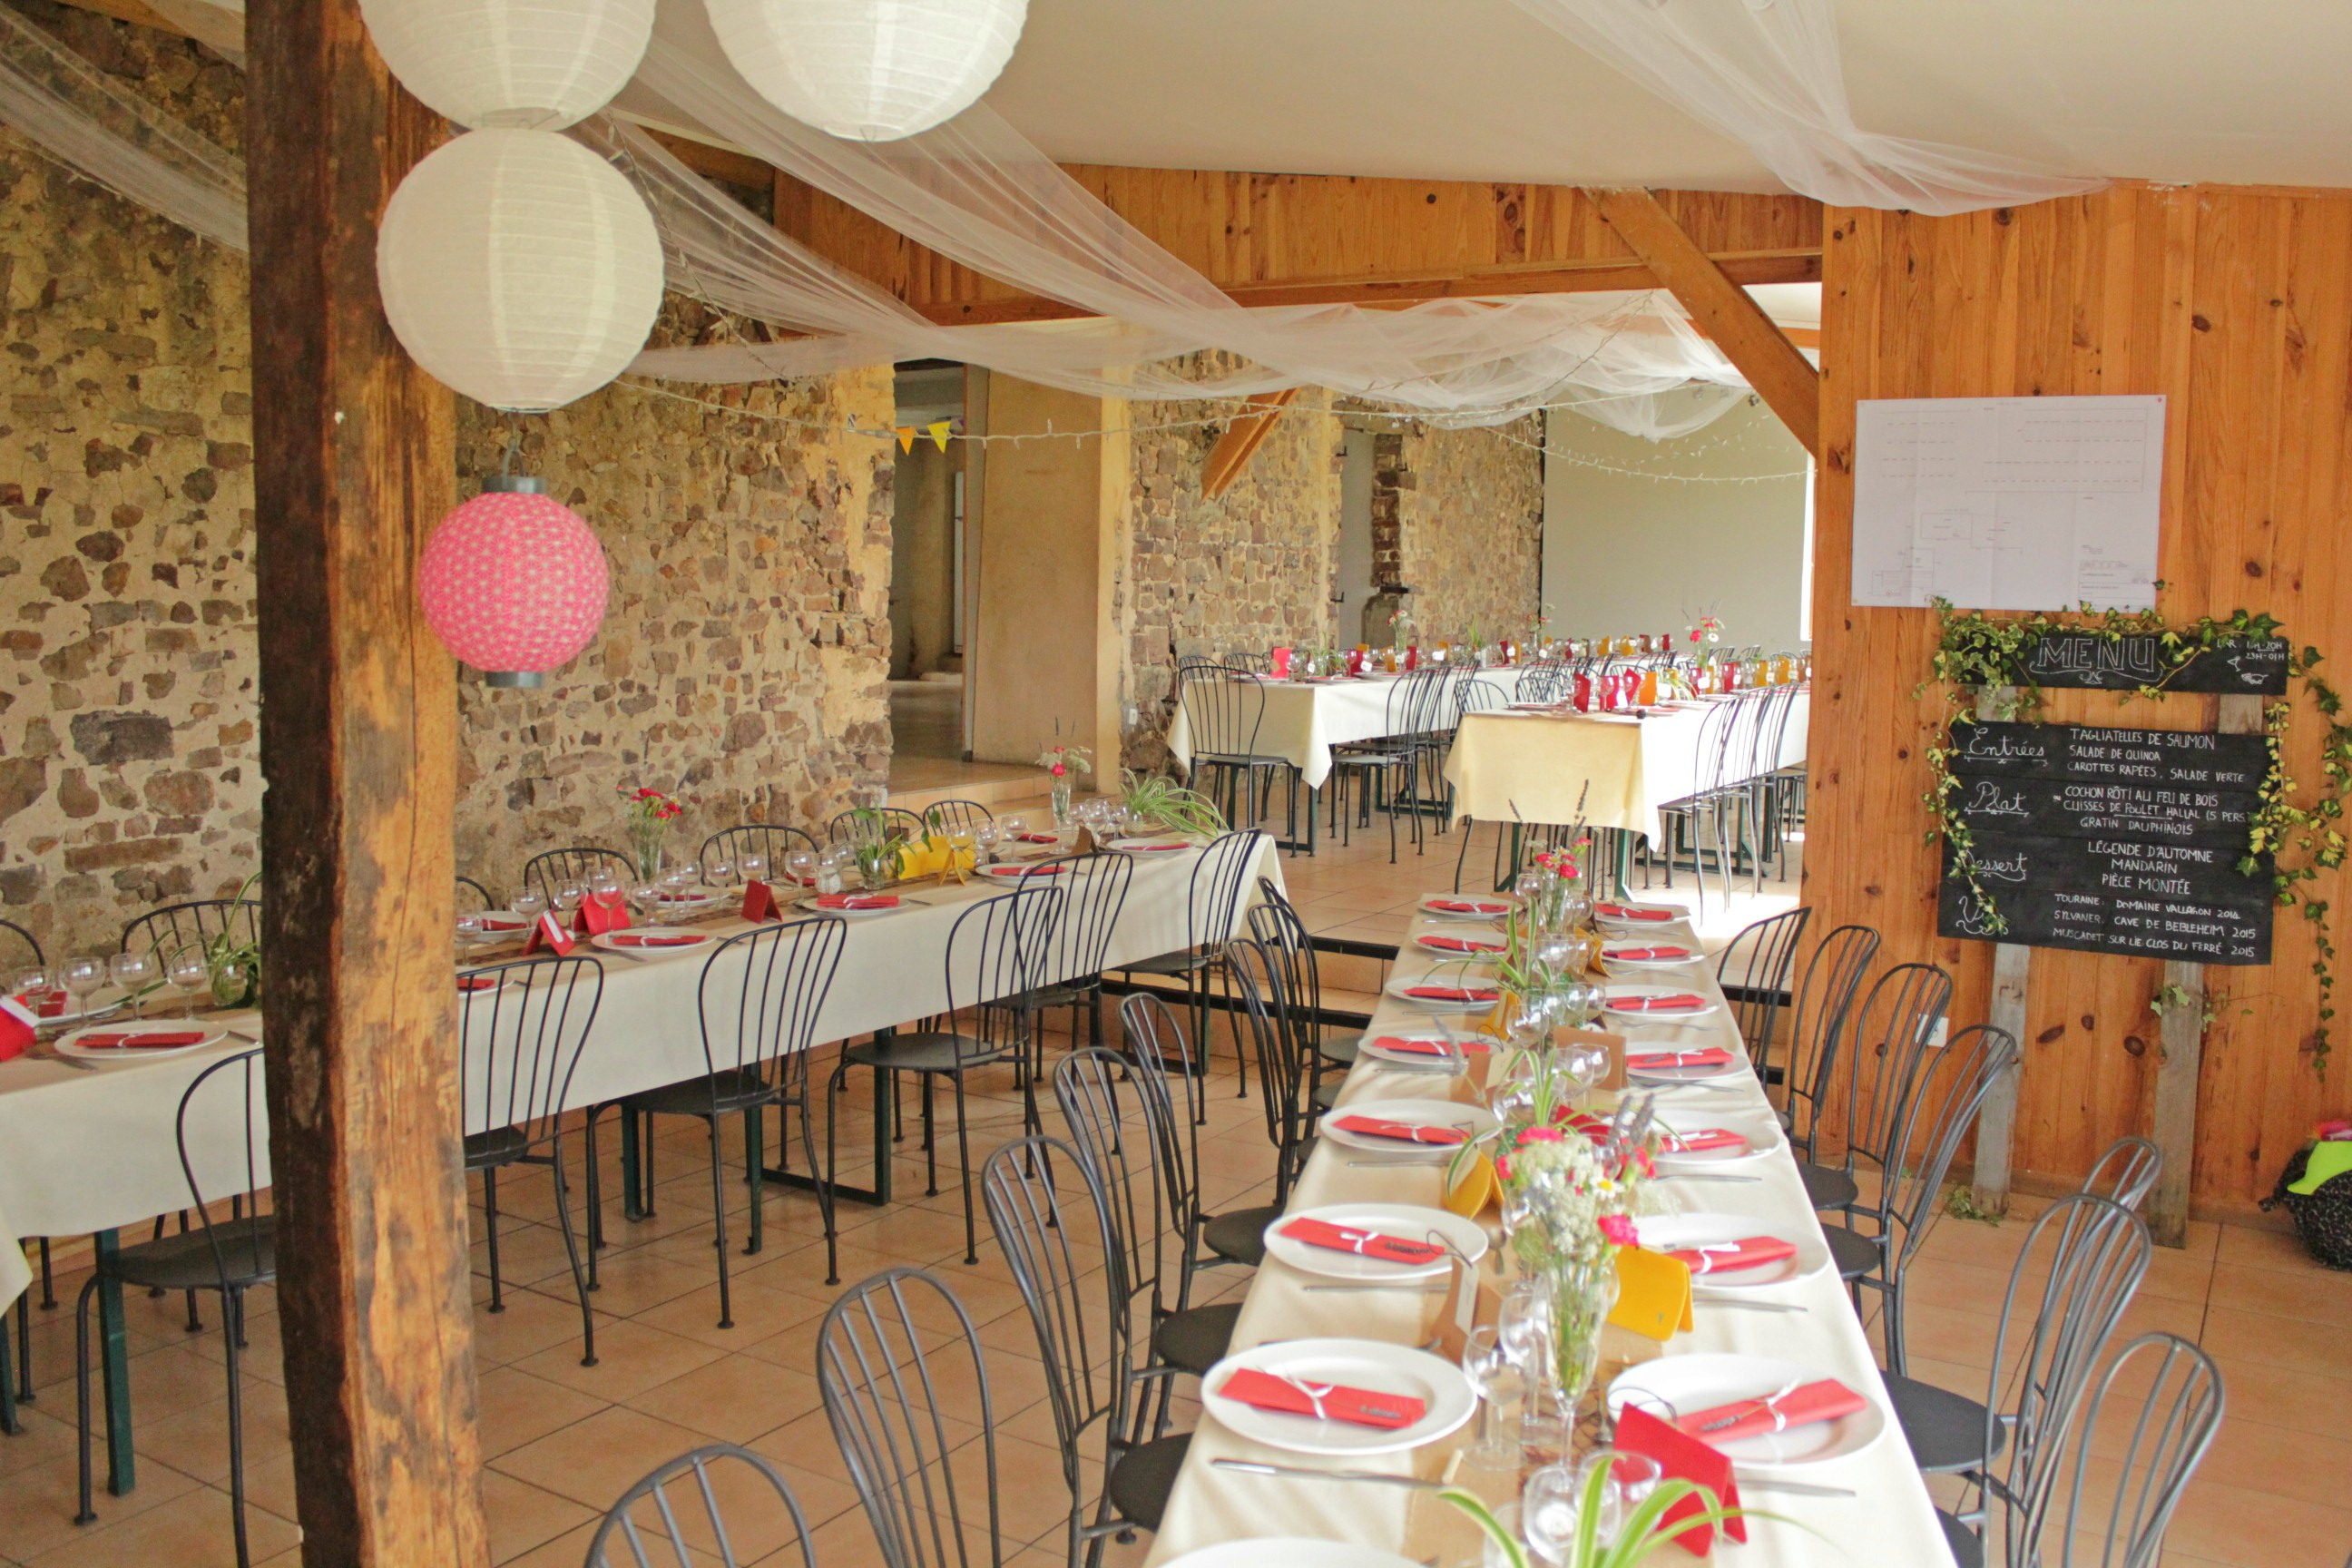 Salle Poterie